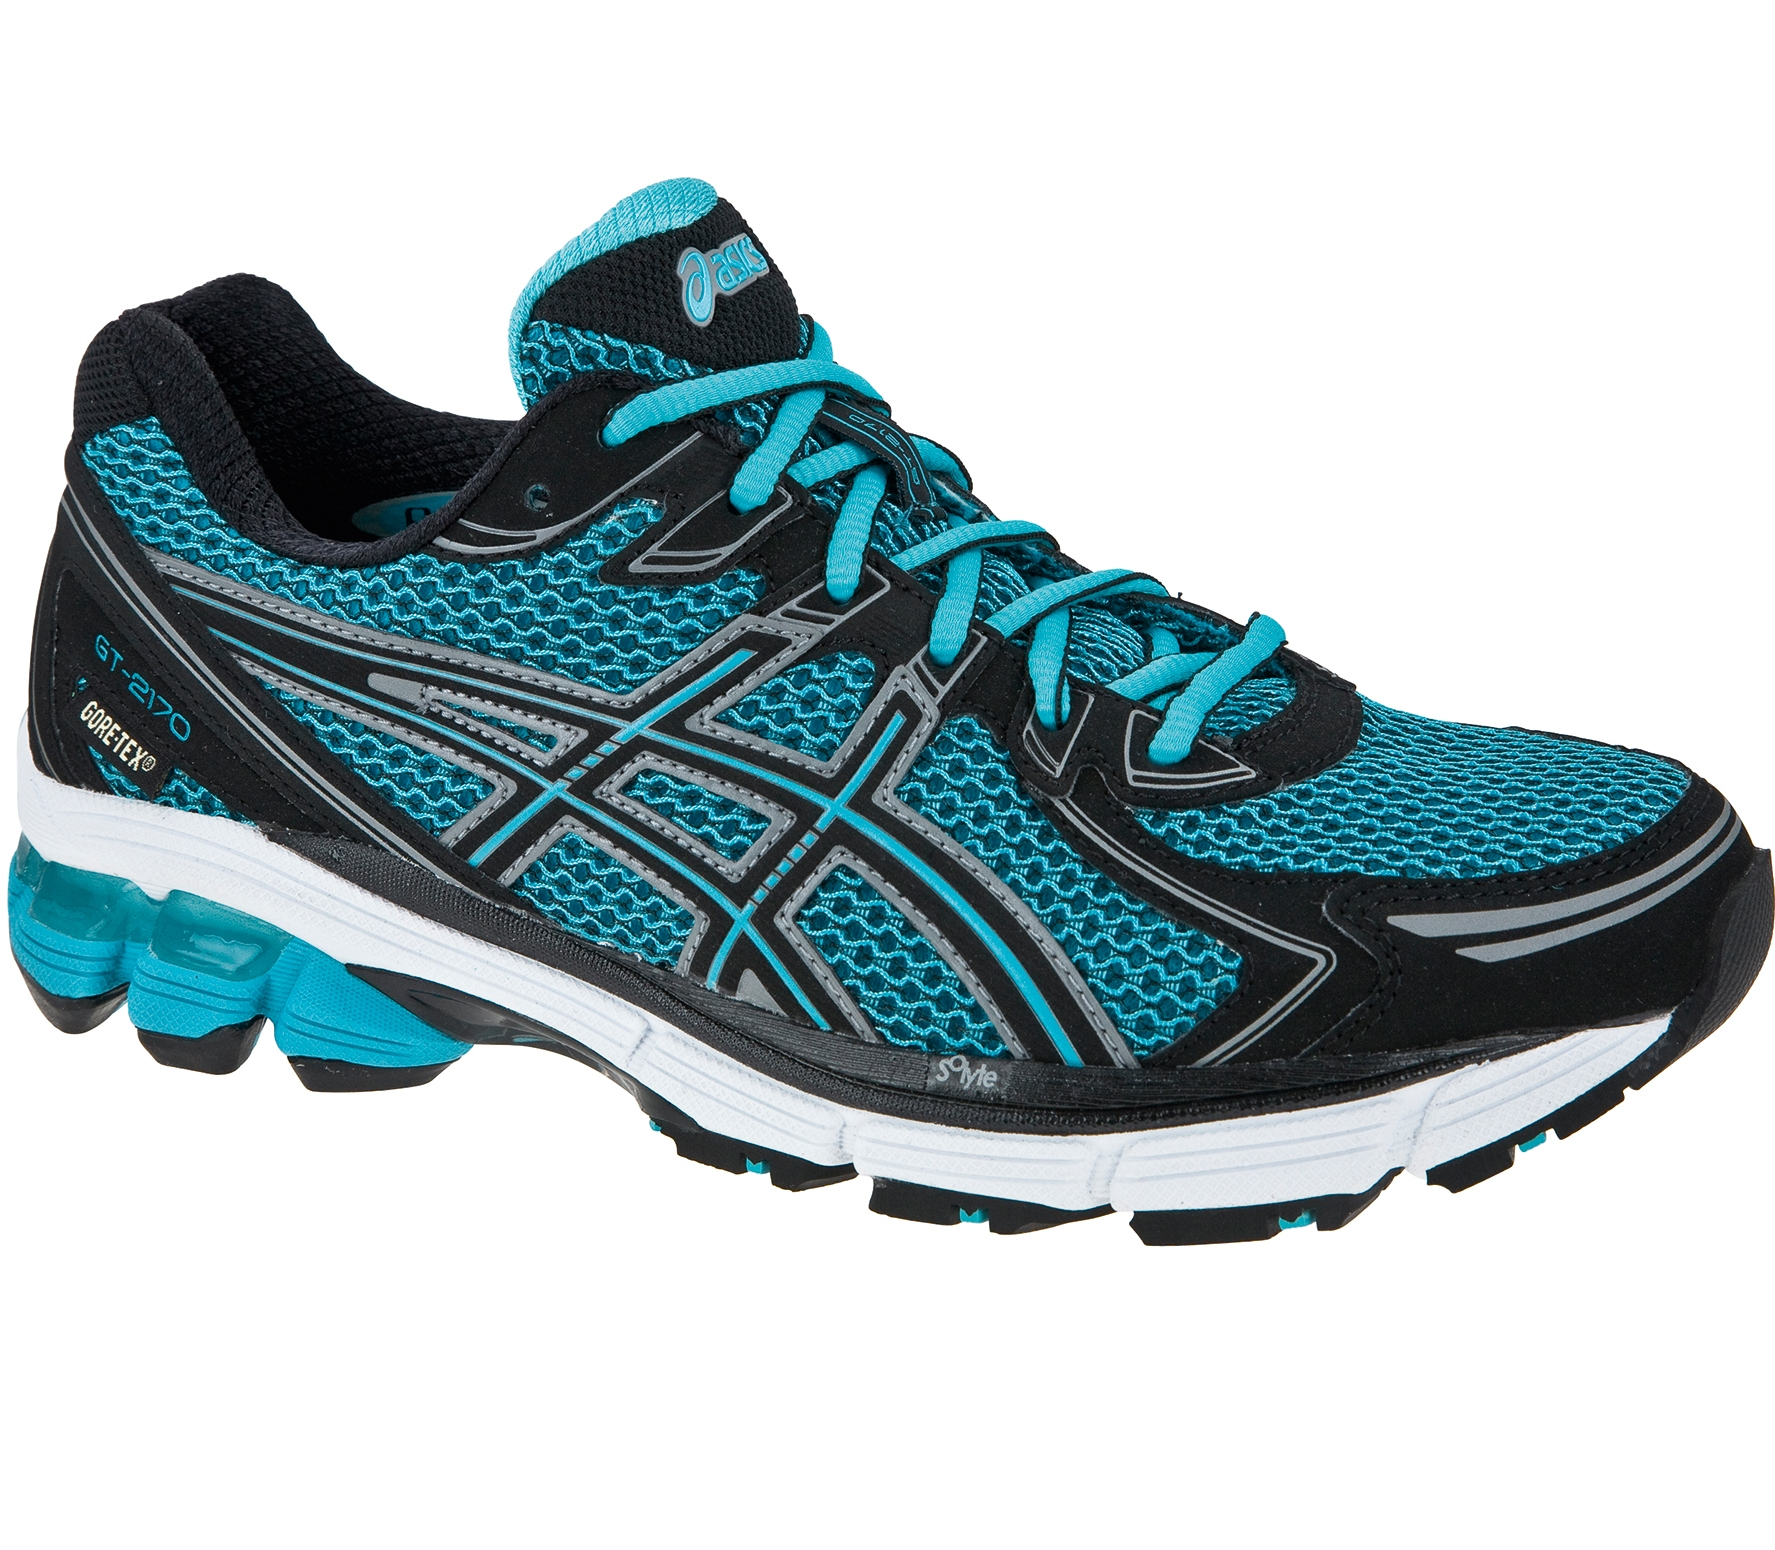 Asics - Womens Running Shoe GT-2170 G-TX Trail - HW12